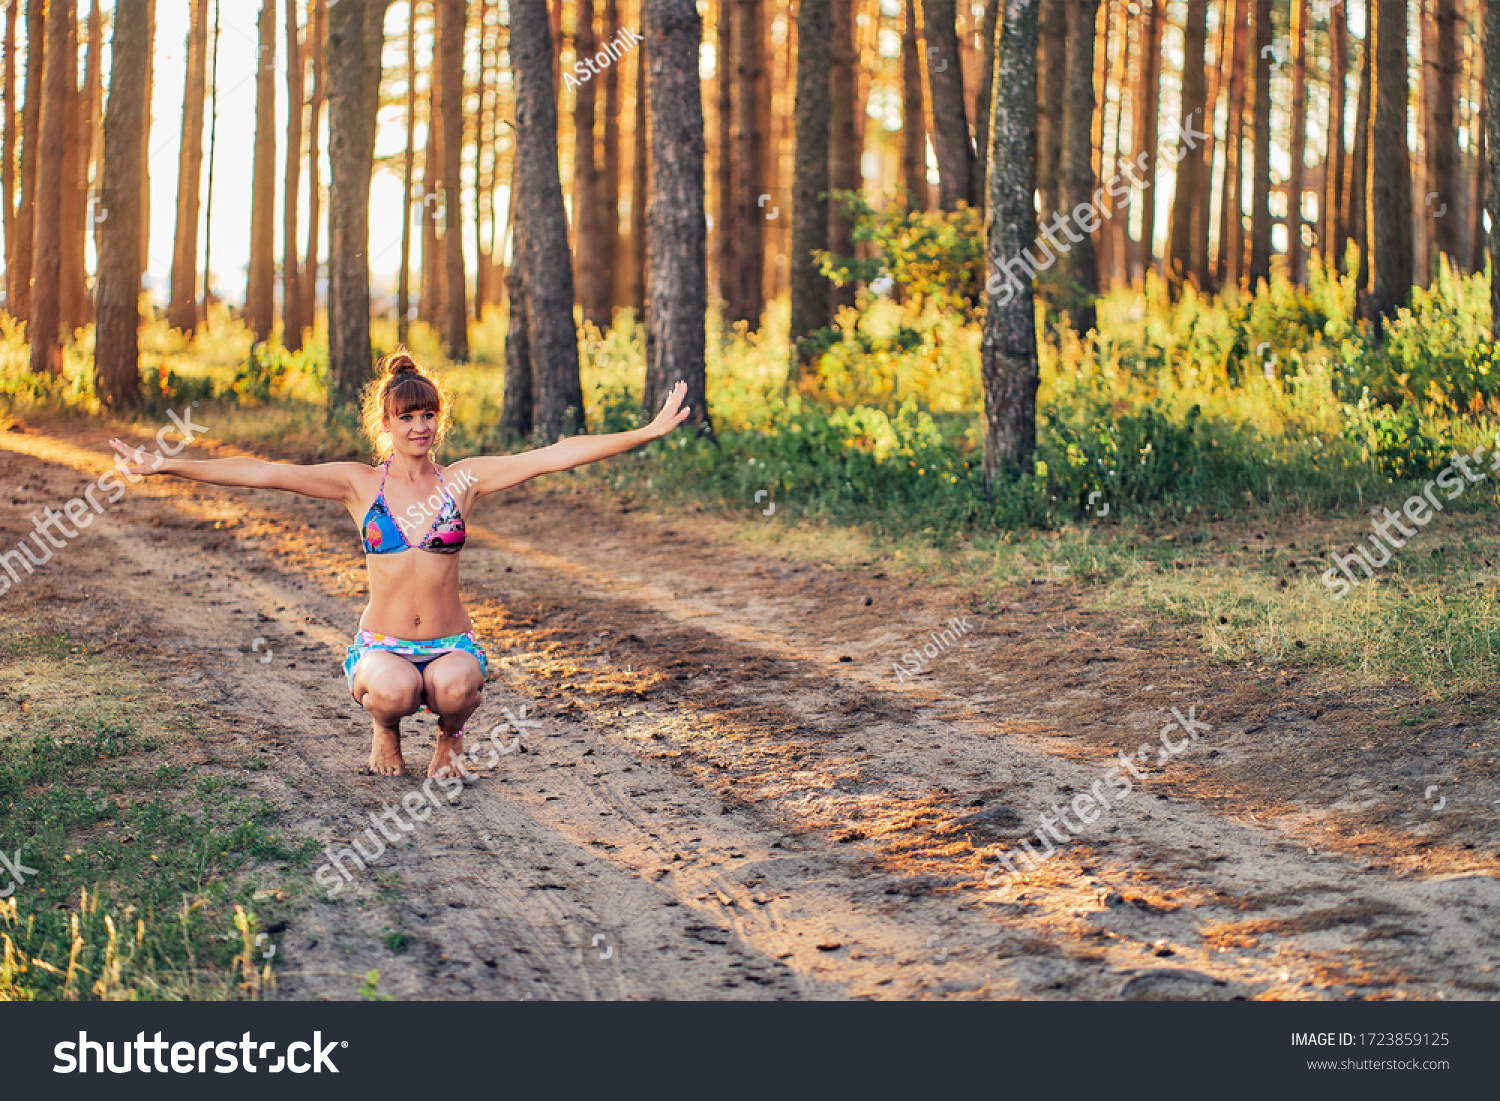 https://image.shutterstock.com/z/stock-photo-girl-in-a-bathing-suit-and-short-skirt-is-training-in-the-forest-1723859125.jpg